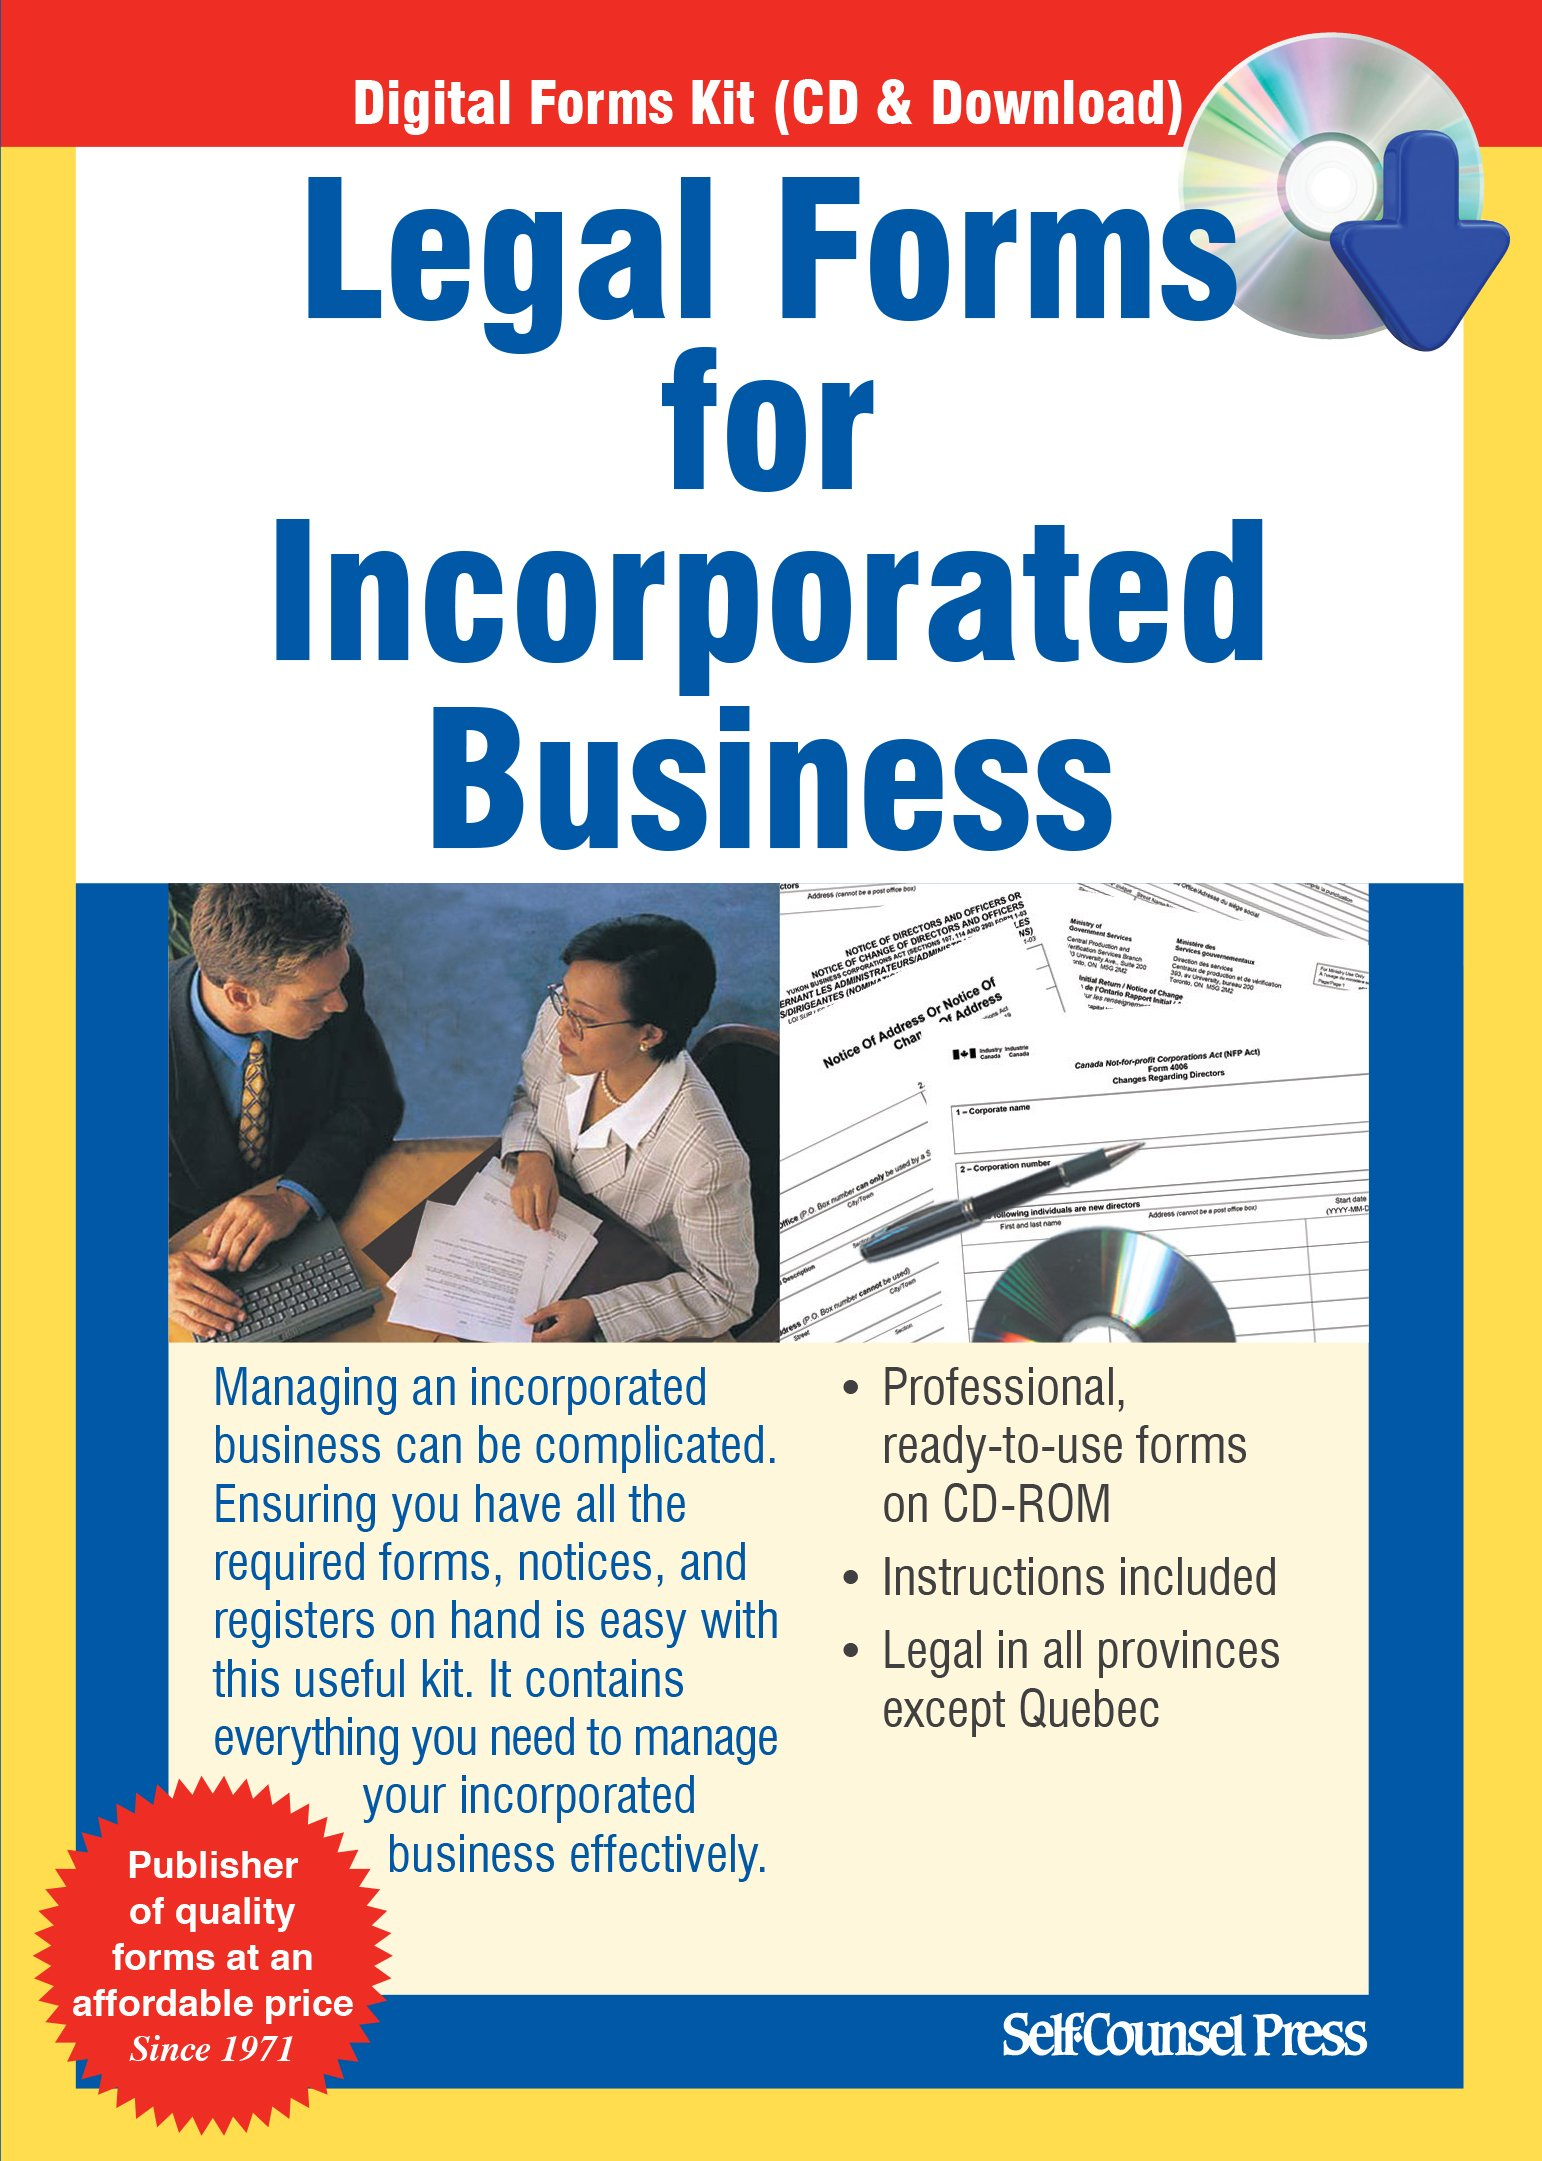 Legal Forms For Incorporated Business: Self-Counsel Press